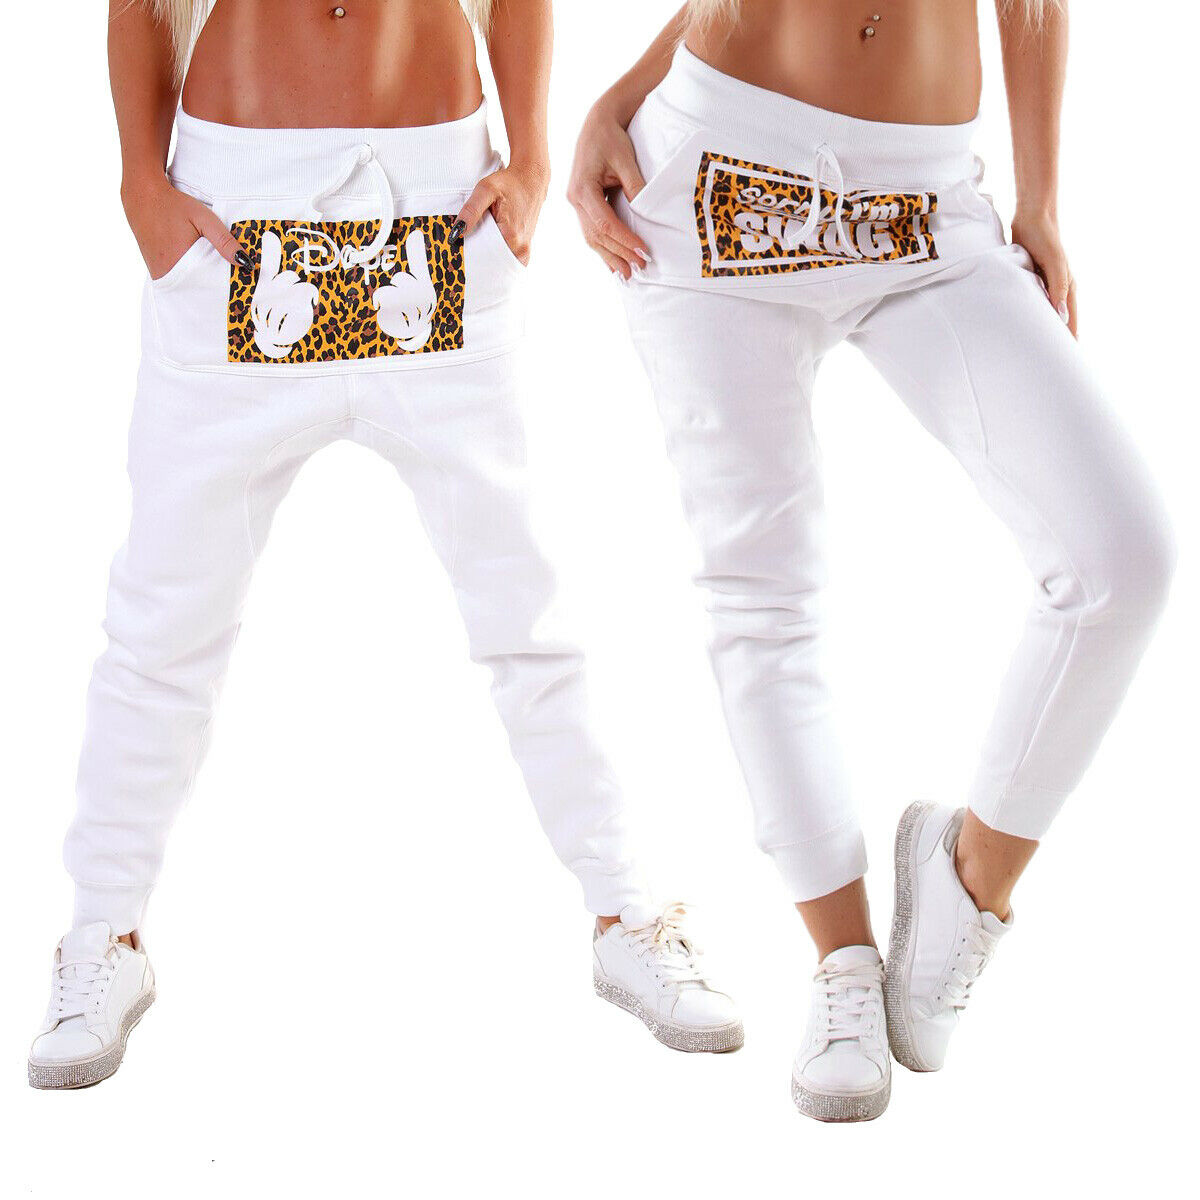 10240 Damen Jogging Hose Joggpants Sporthose Fitness Trainingshose Leopard..